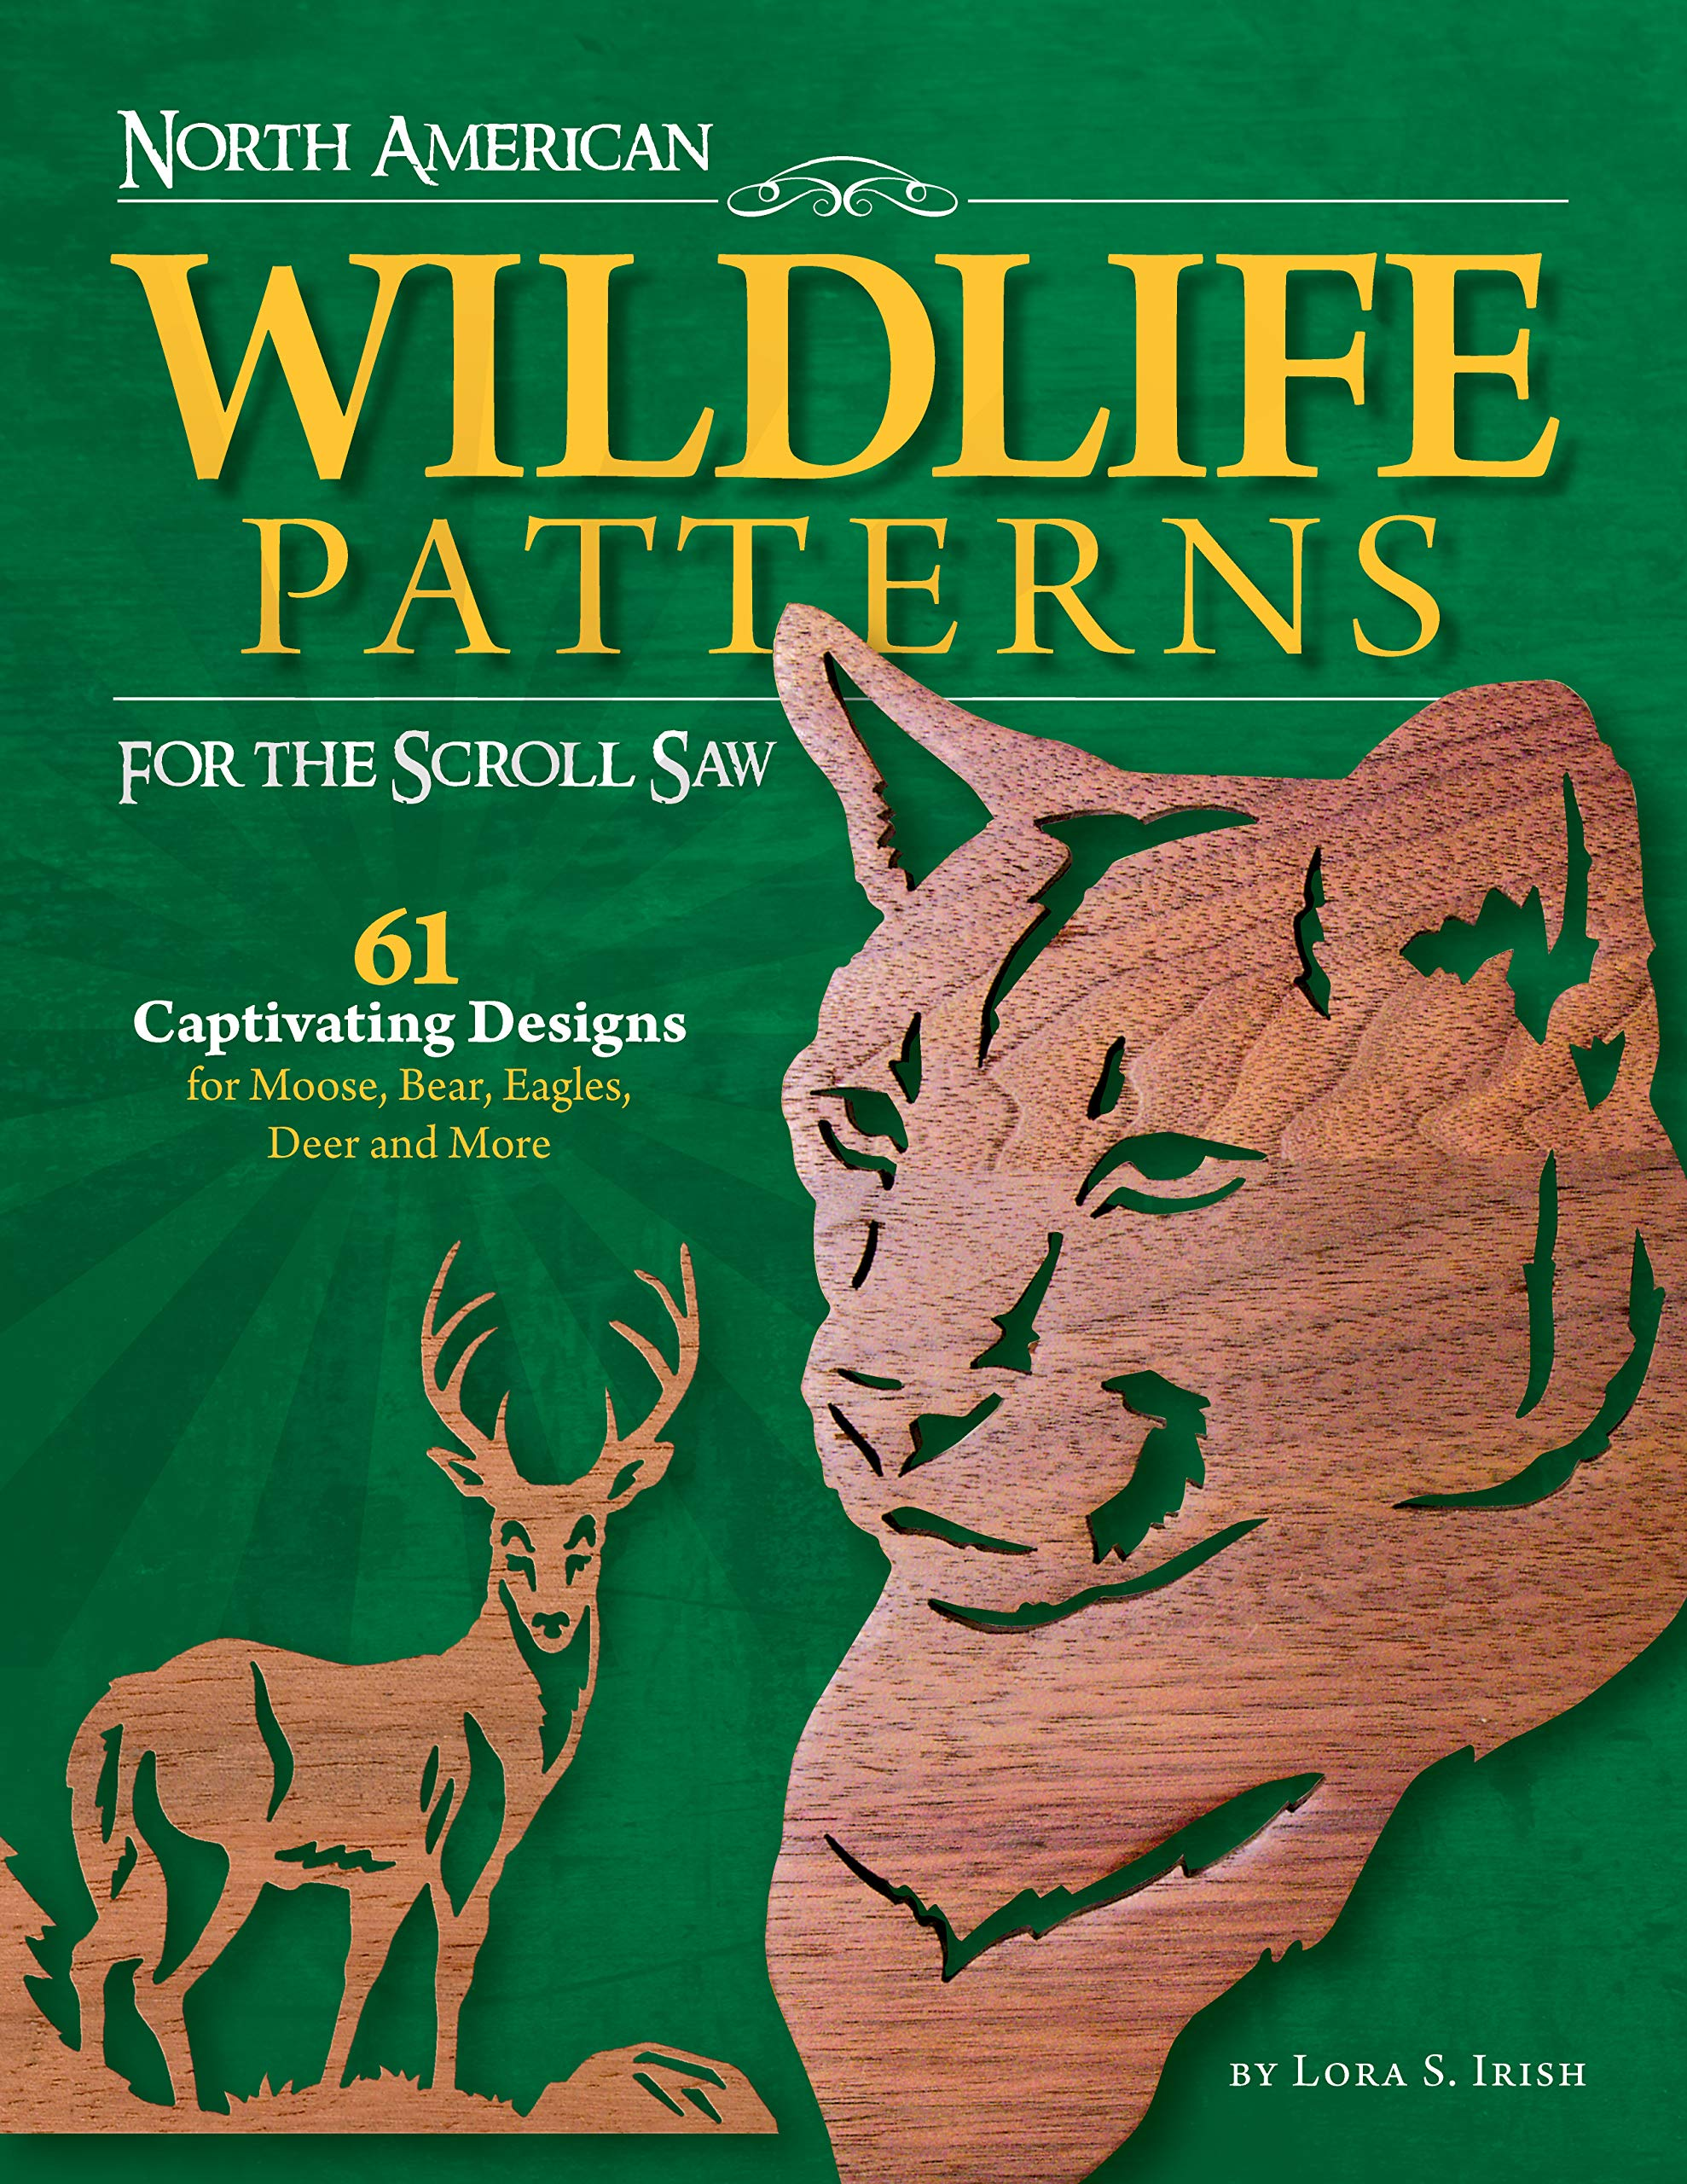 North American Wildlife Patterns for the Scroll Saw: 61 Captivating